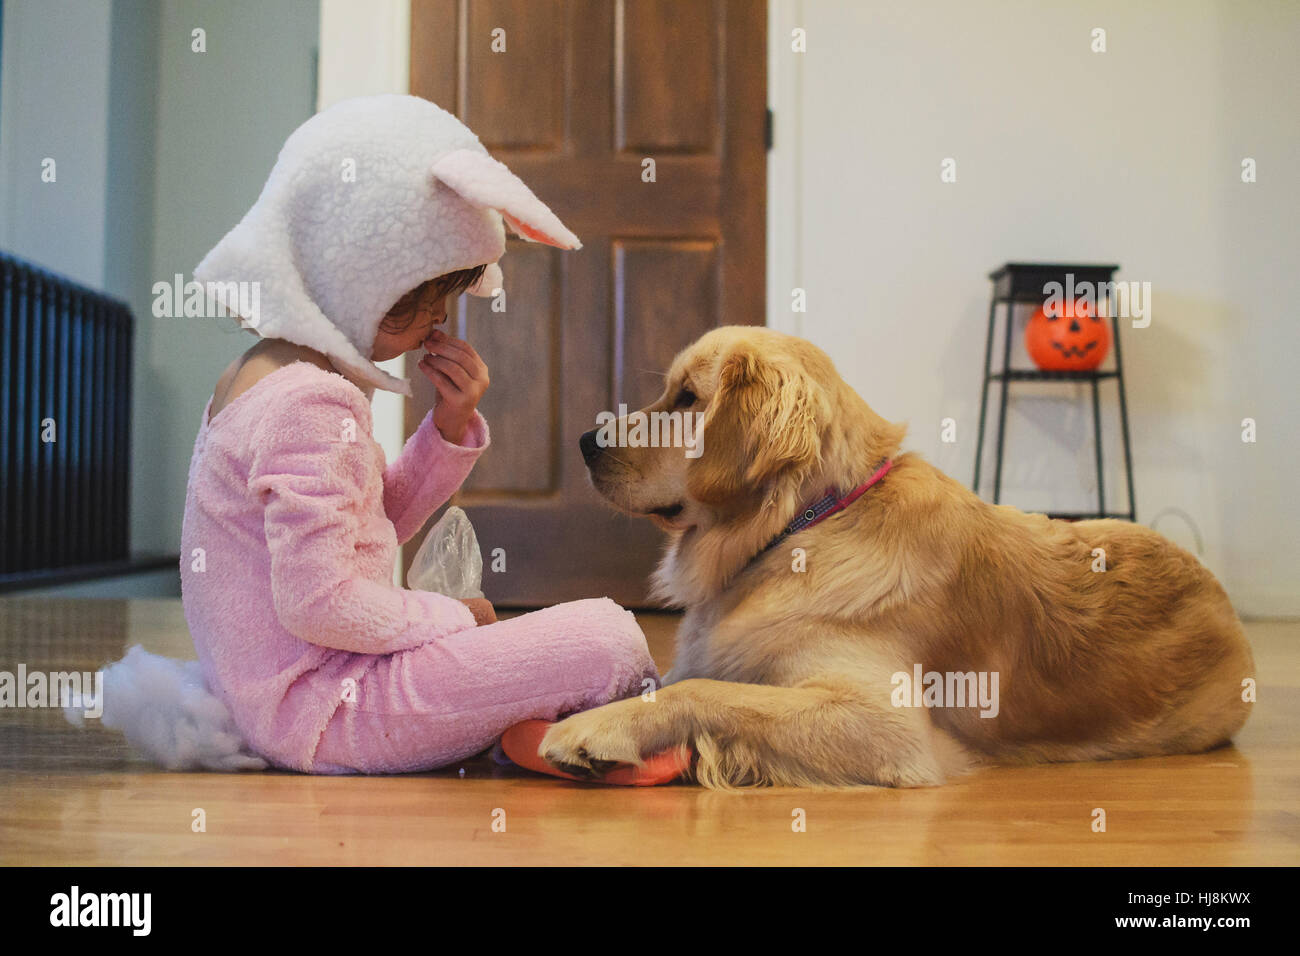 girl in bunny costume sharing halloween candy with golden retriever dog